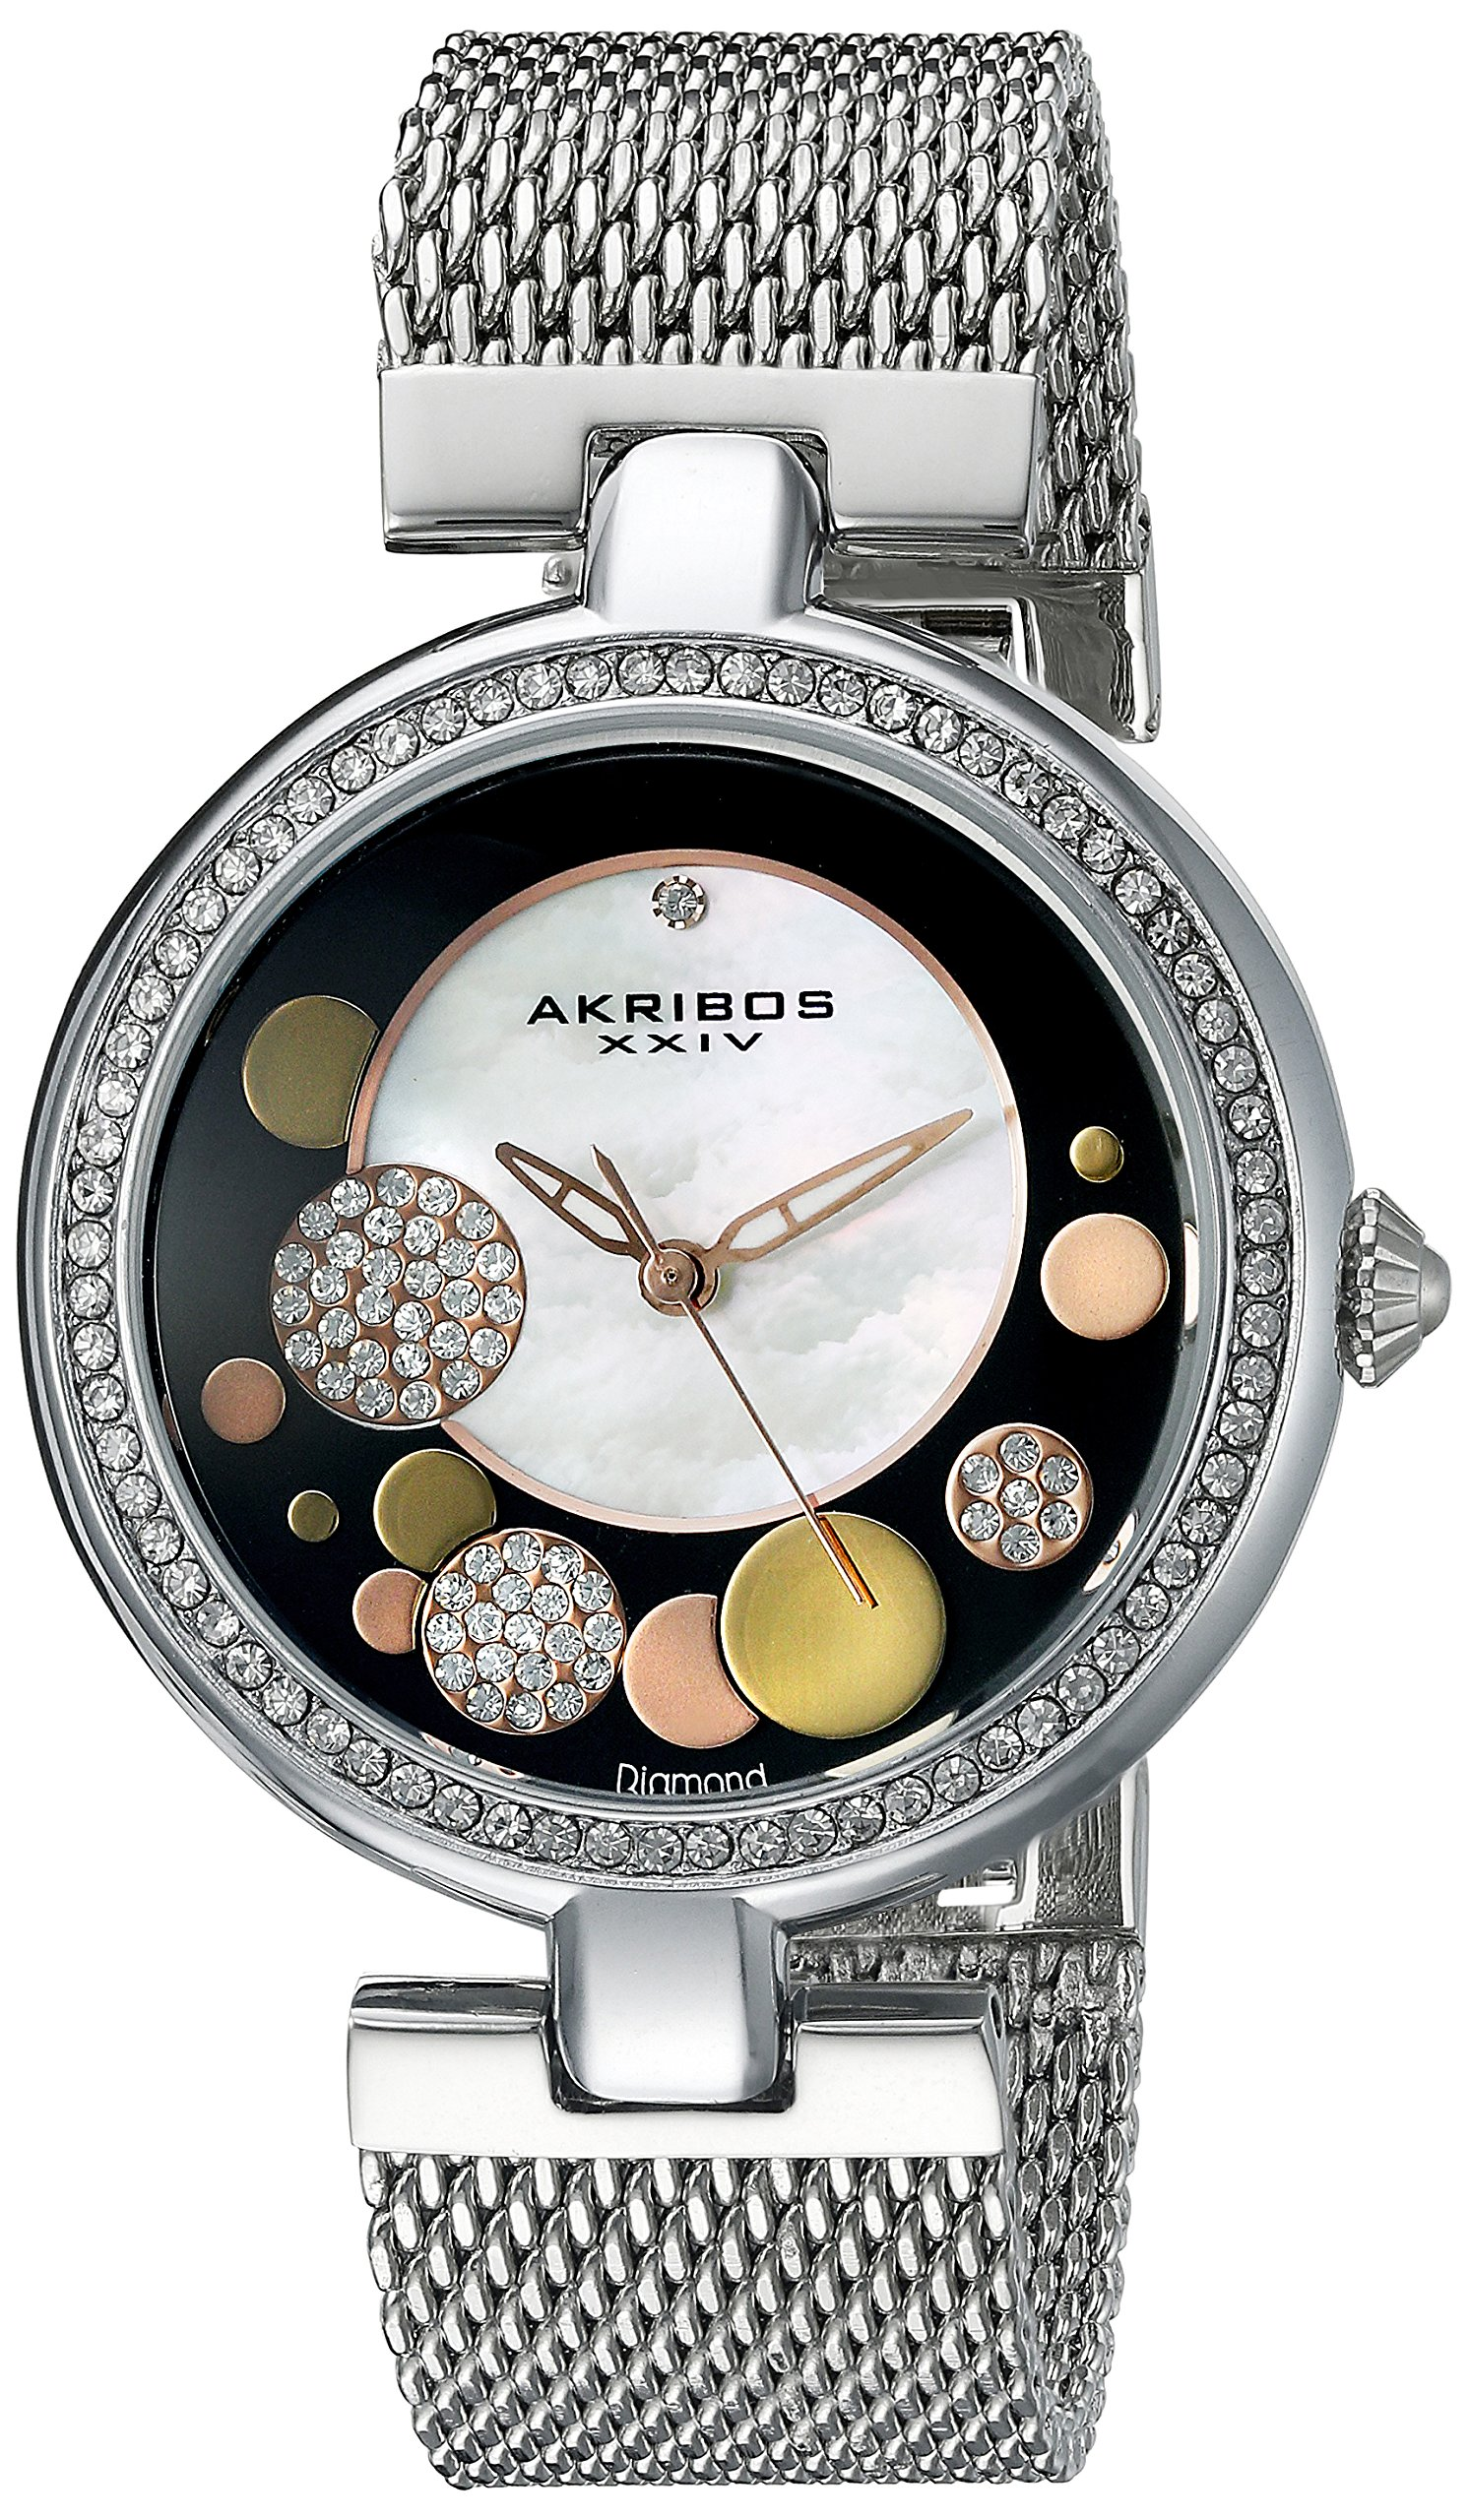 Akribos XXIV Women's AK881 Mother of Pearl Watch with Stainless Steel Mesh Bracelet (Black/Silver)